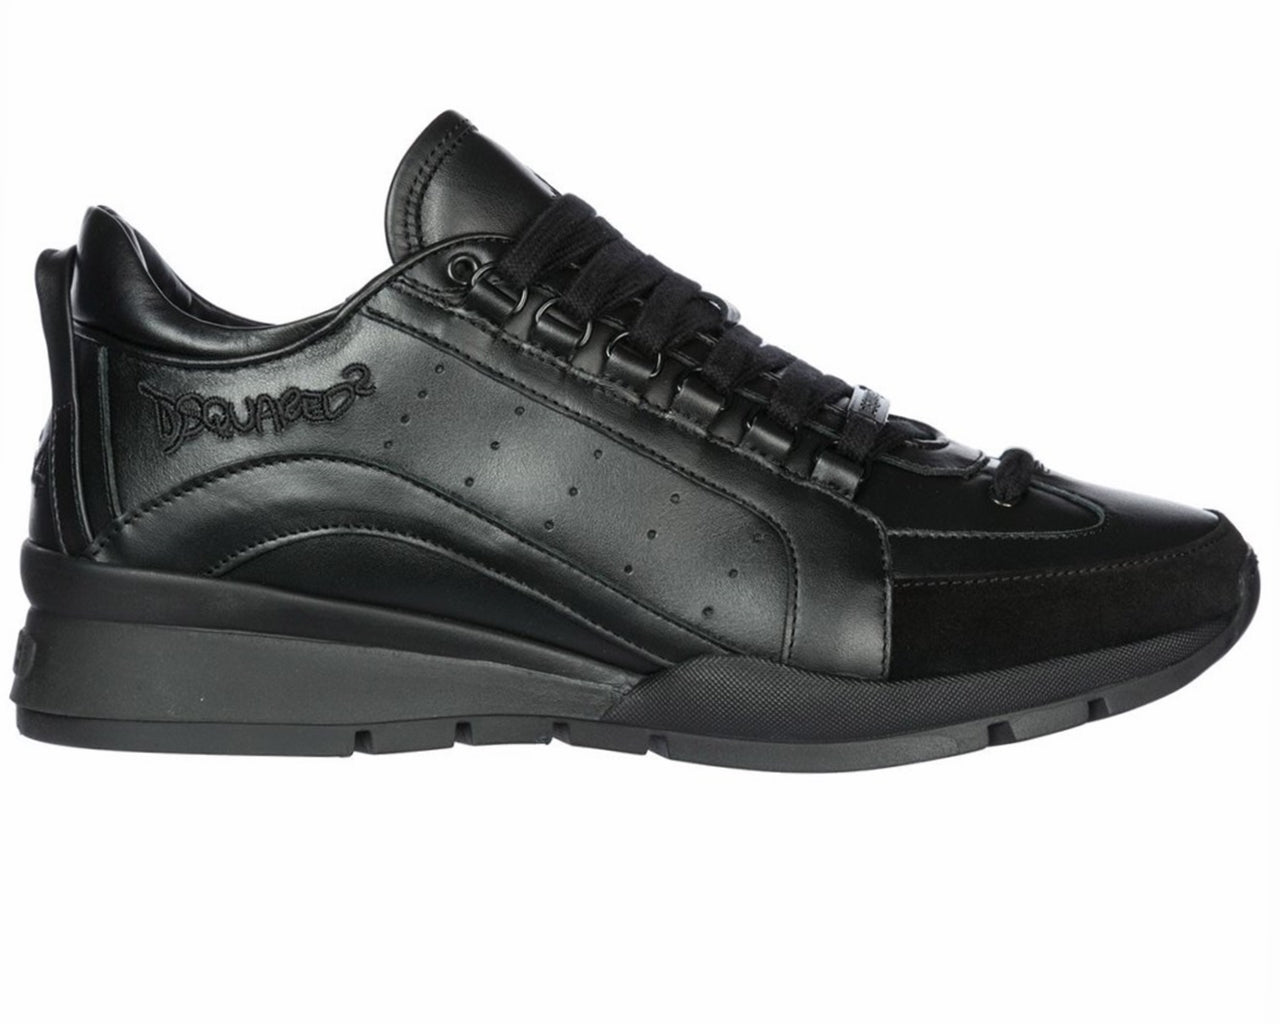 dsquared trainers sale